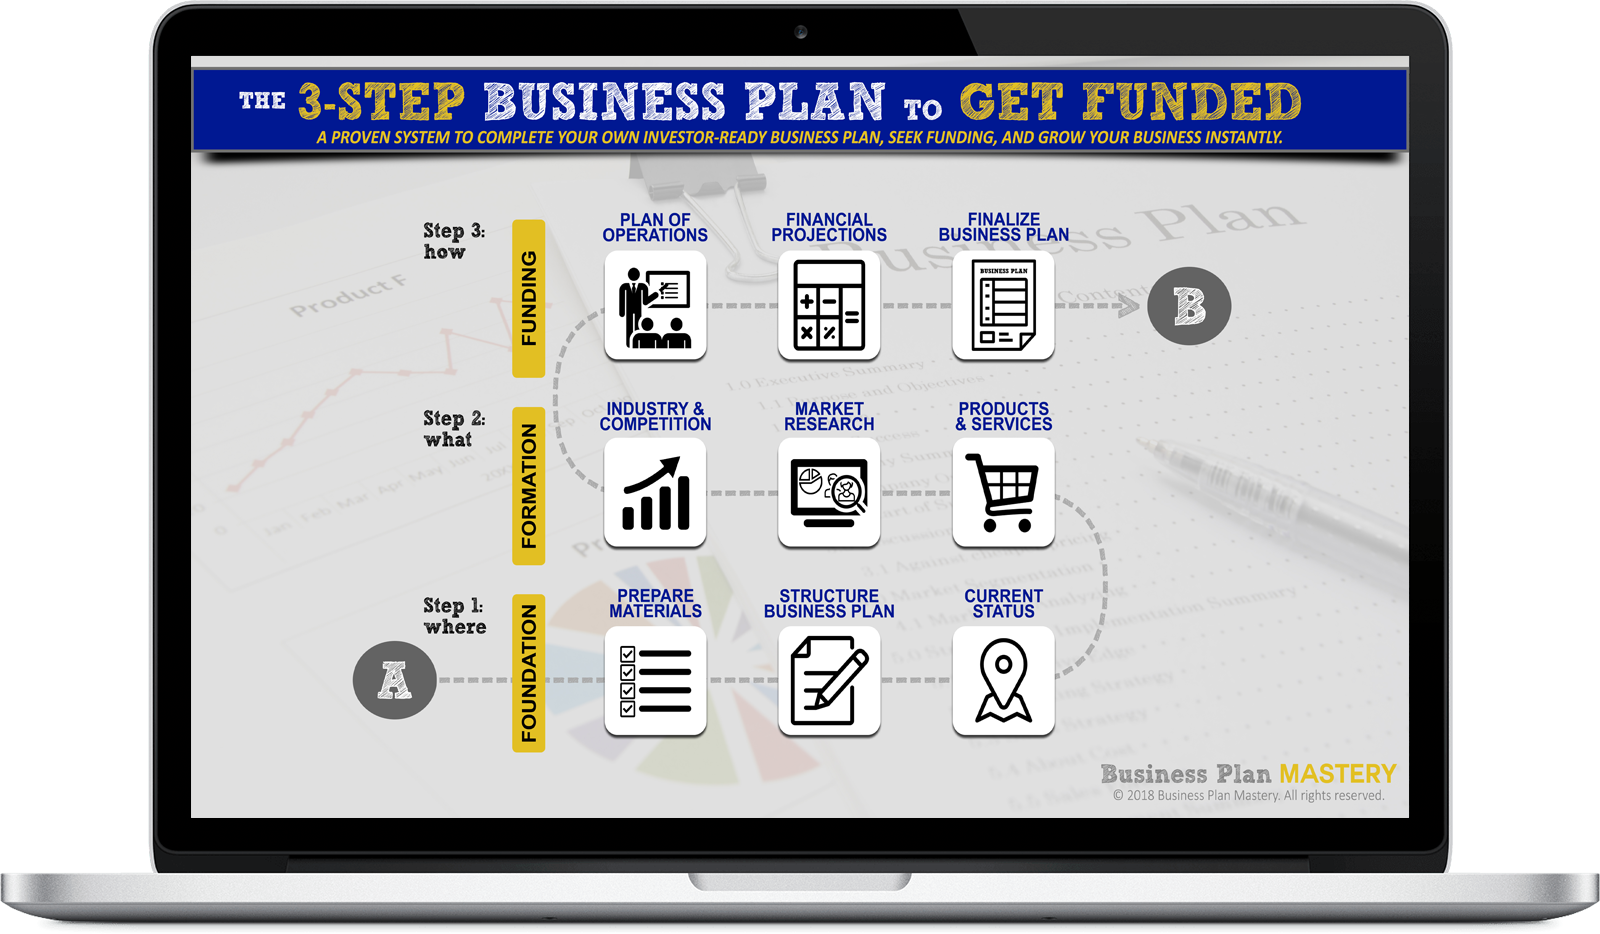 Business Plan Mastery - 3-Step Business Plan Signature System